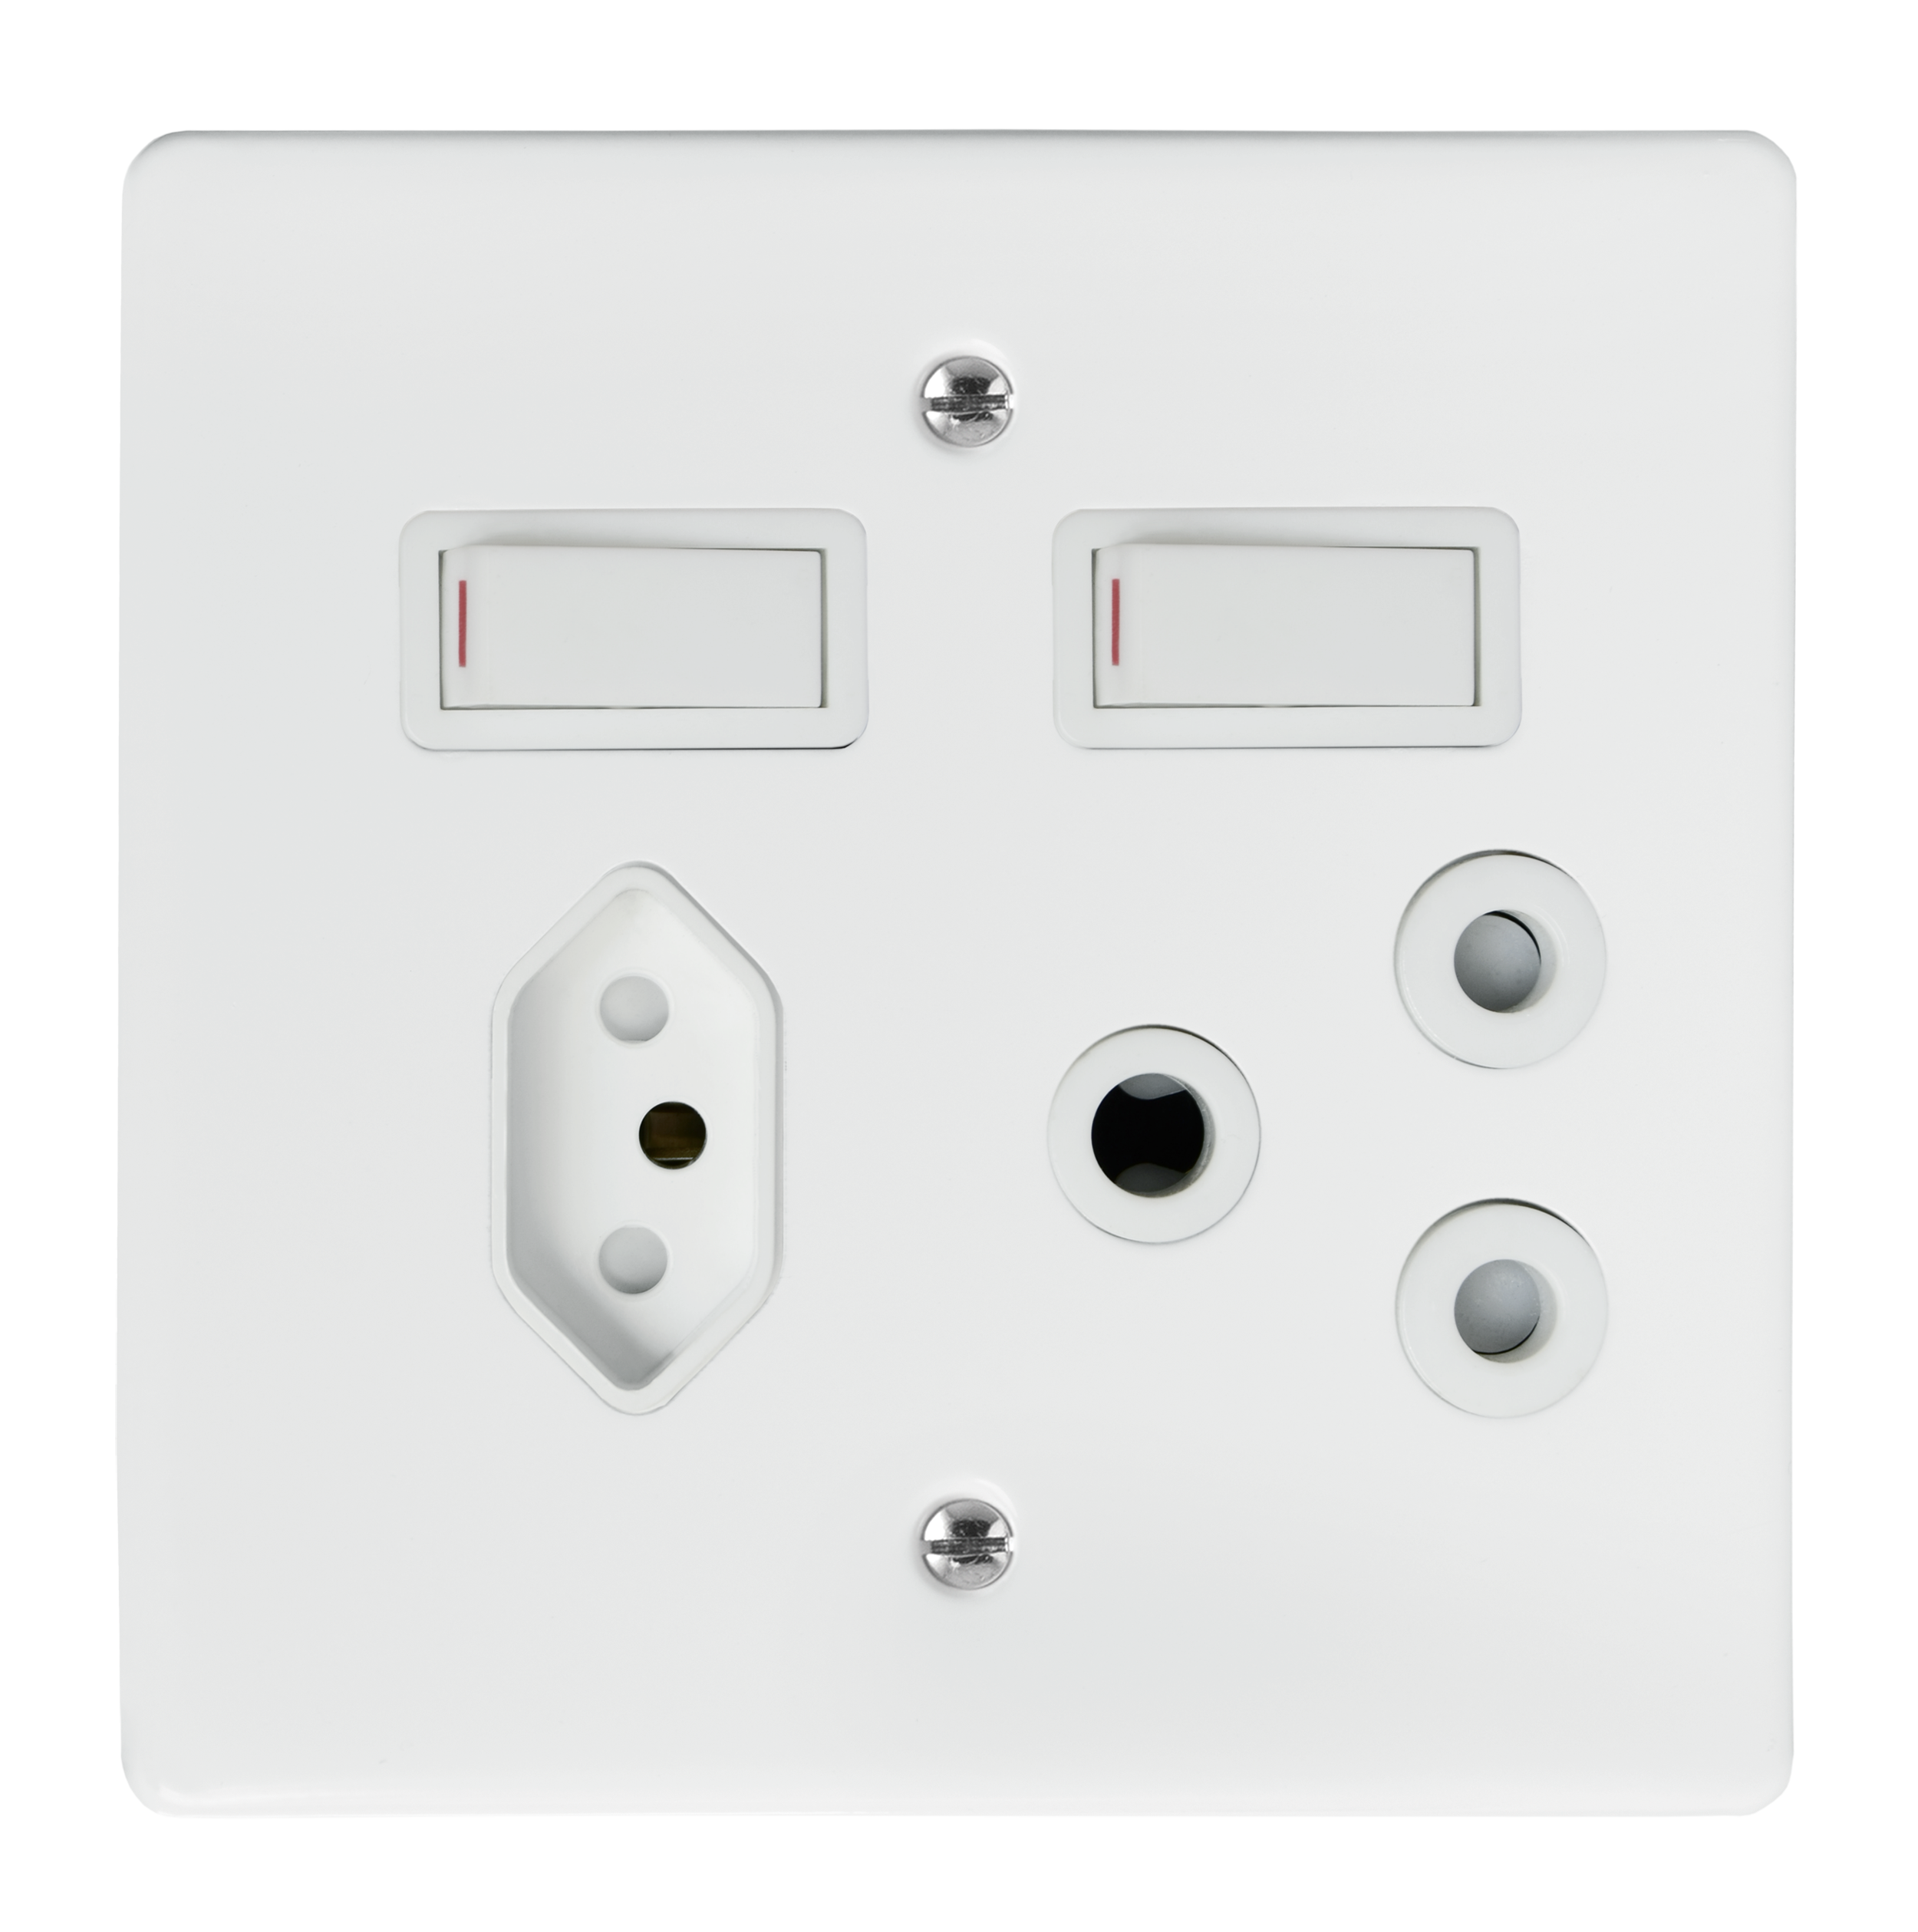 Still Some Confusion Around New Compulsory Regulation For Socket Outlets Ecasa